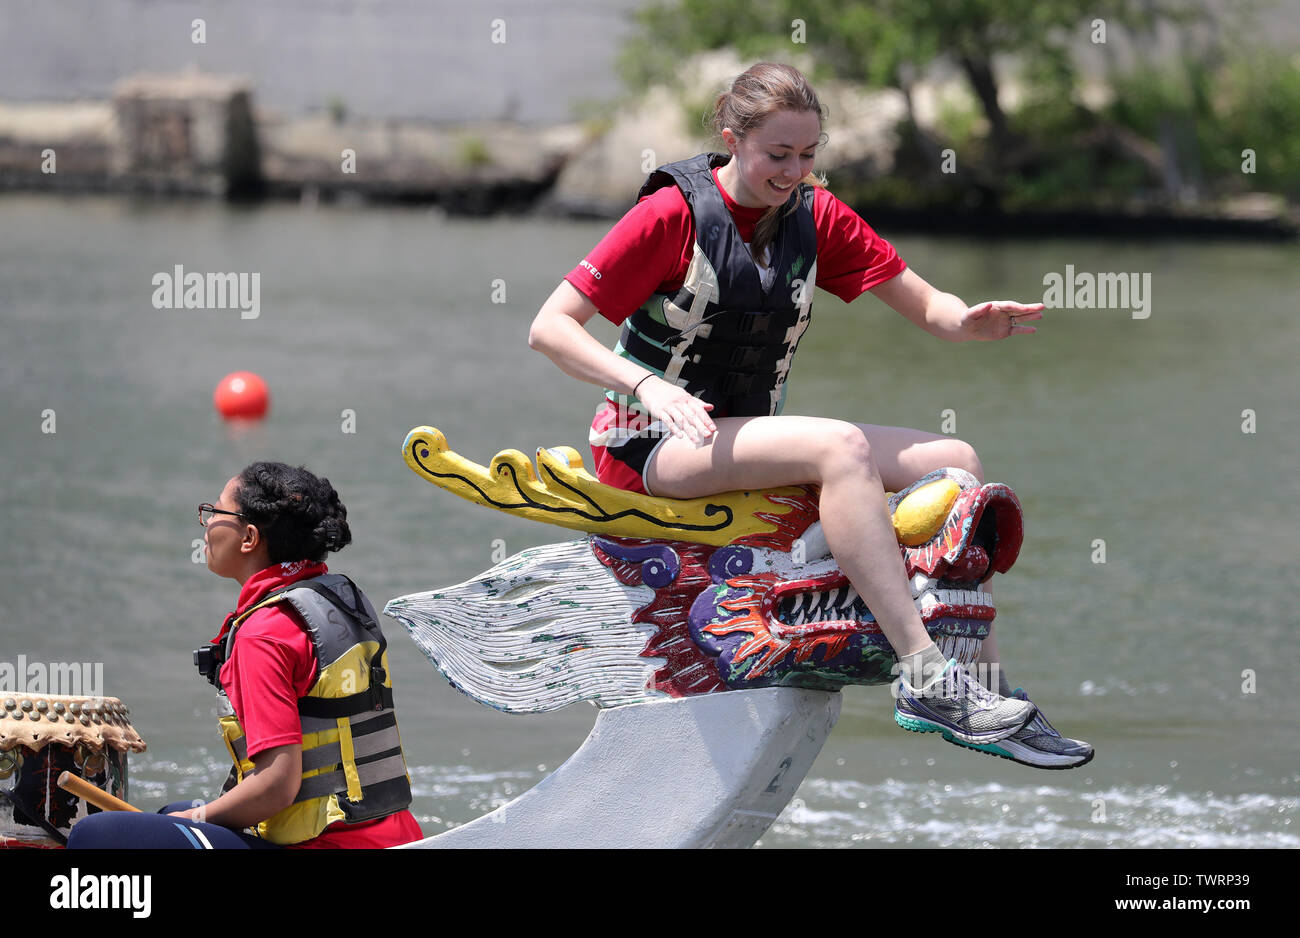 Chicago, USA. 22nd June, 2019. A participant smiles after her team won a round of game in a dragon boat race in Chicago, the United States, on June 22, 2019. The 2019 Chicago Dragon Boat Race kicked off on the south branch of the Chicago River Saturday morning, with 34 dragon boat teams participating in this year's competition. Credit: Wang Ping/Xinhua/Alamy Live News - Stock Image